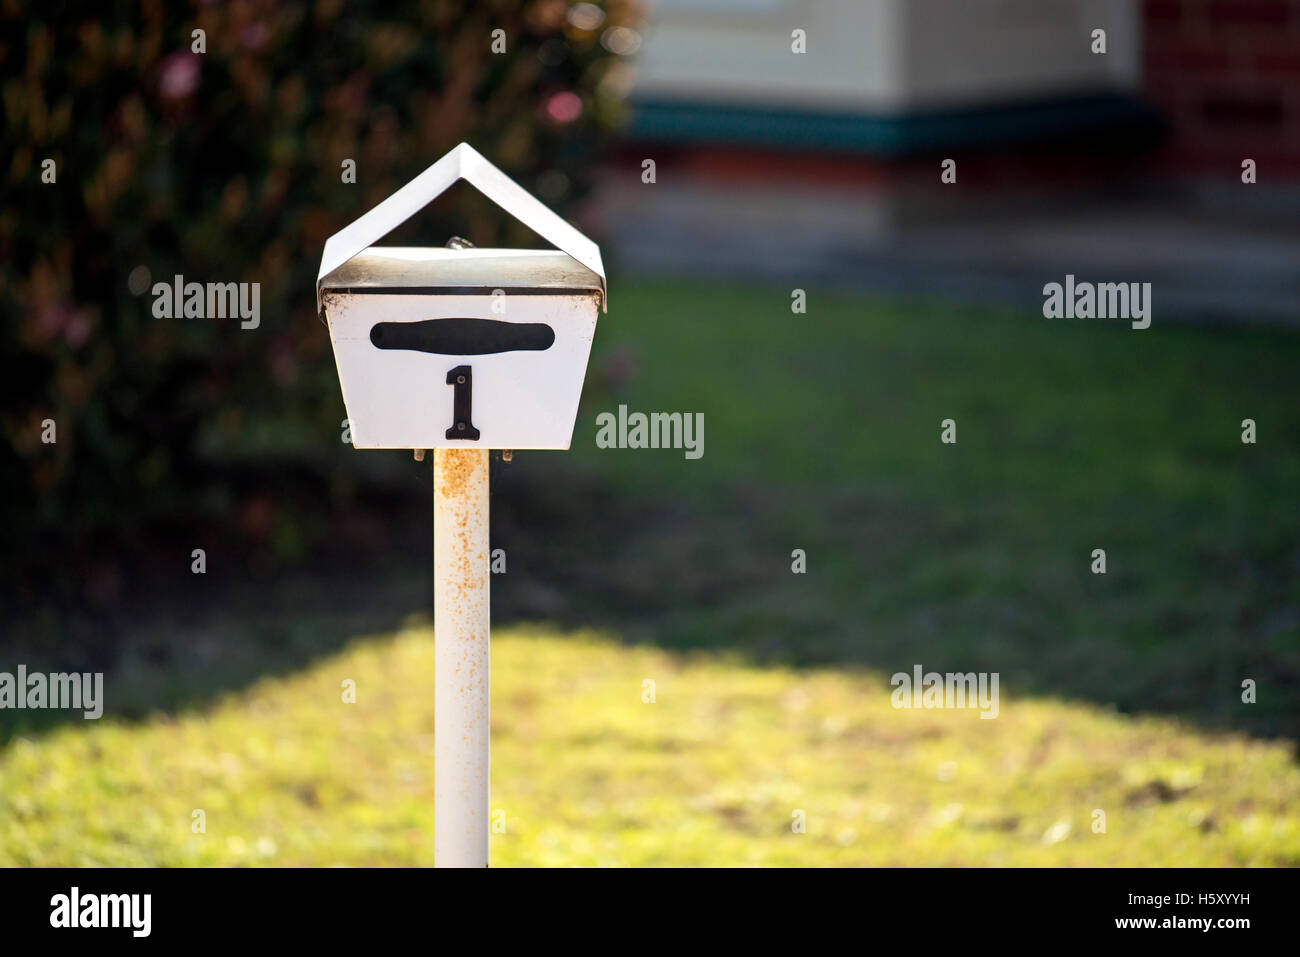 Australian home letterbox with number one on frontyard - Stock Image